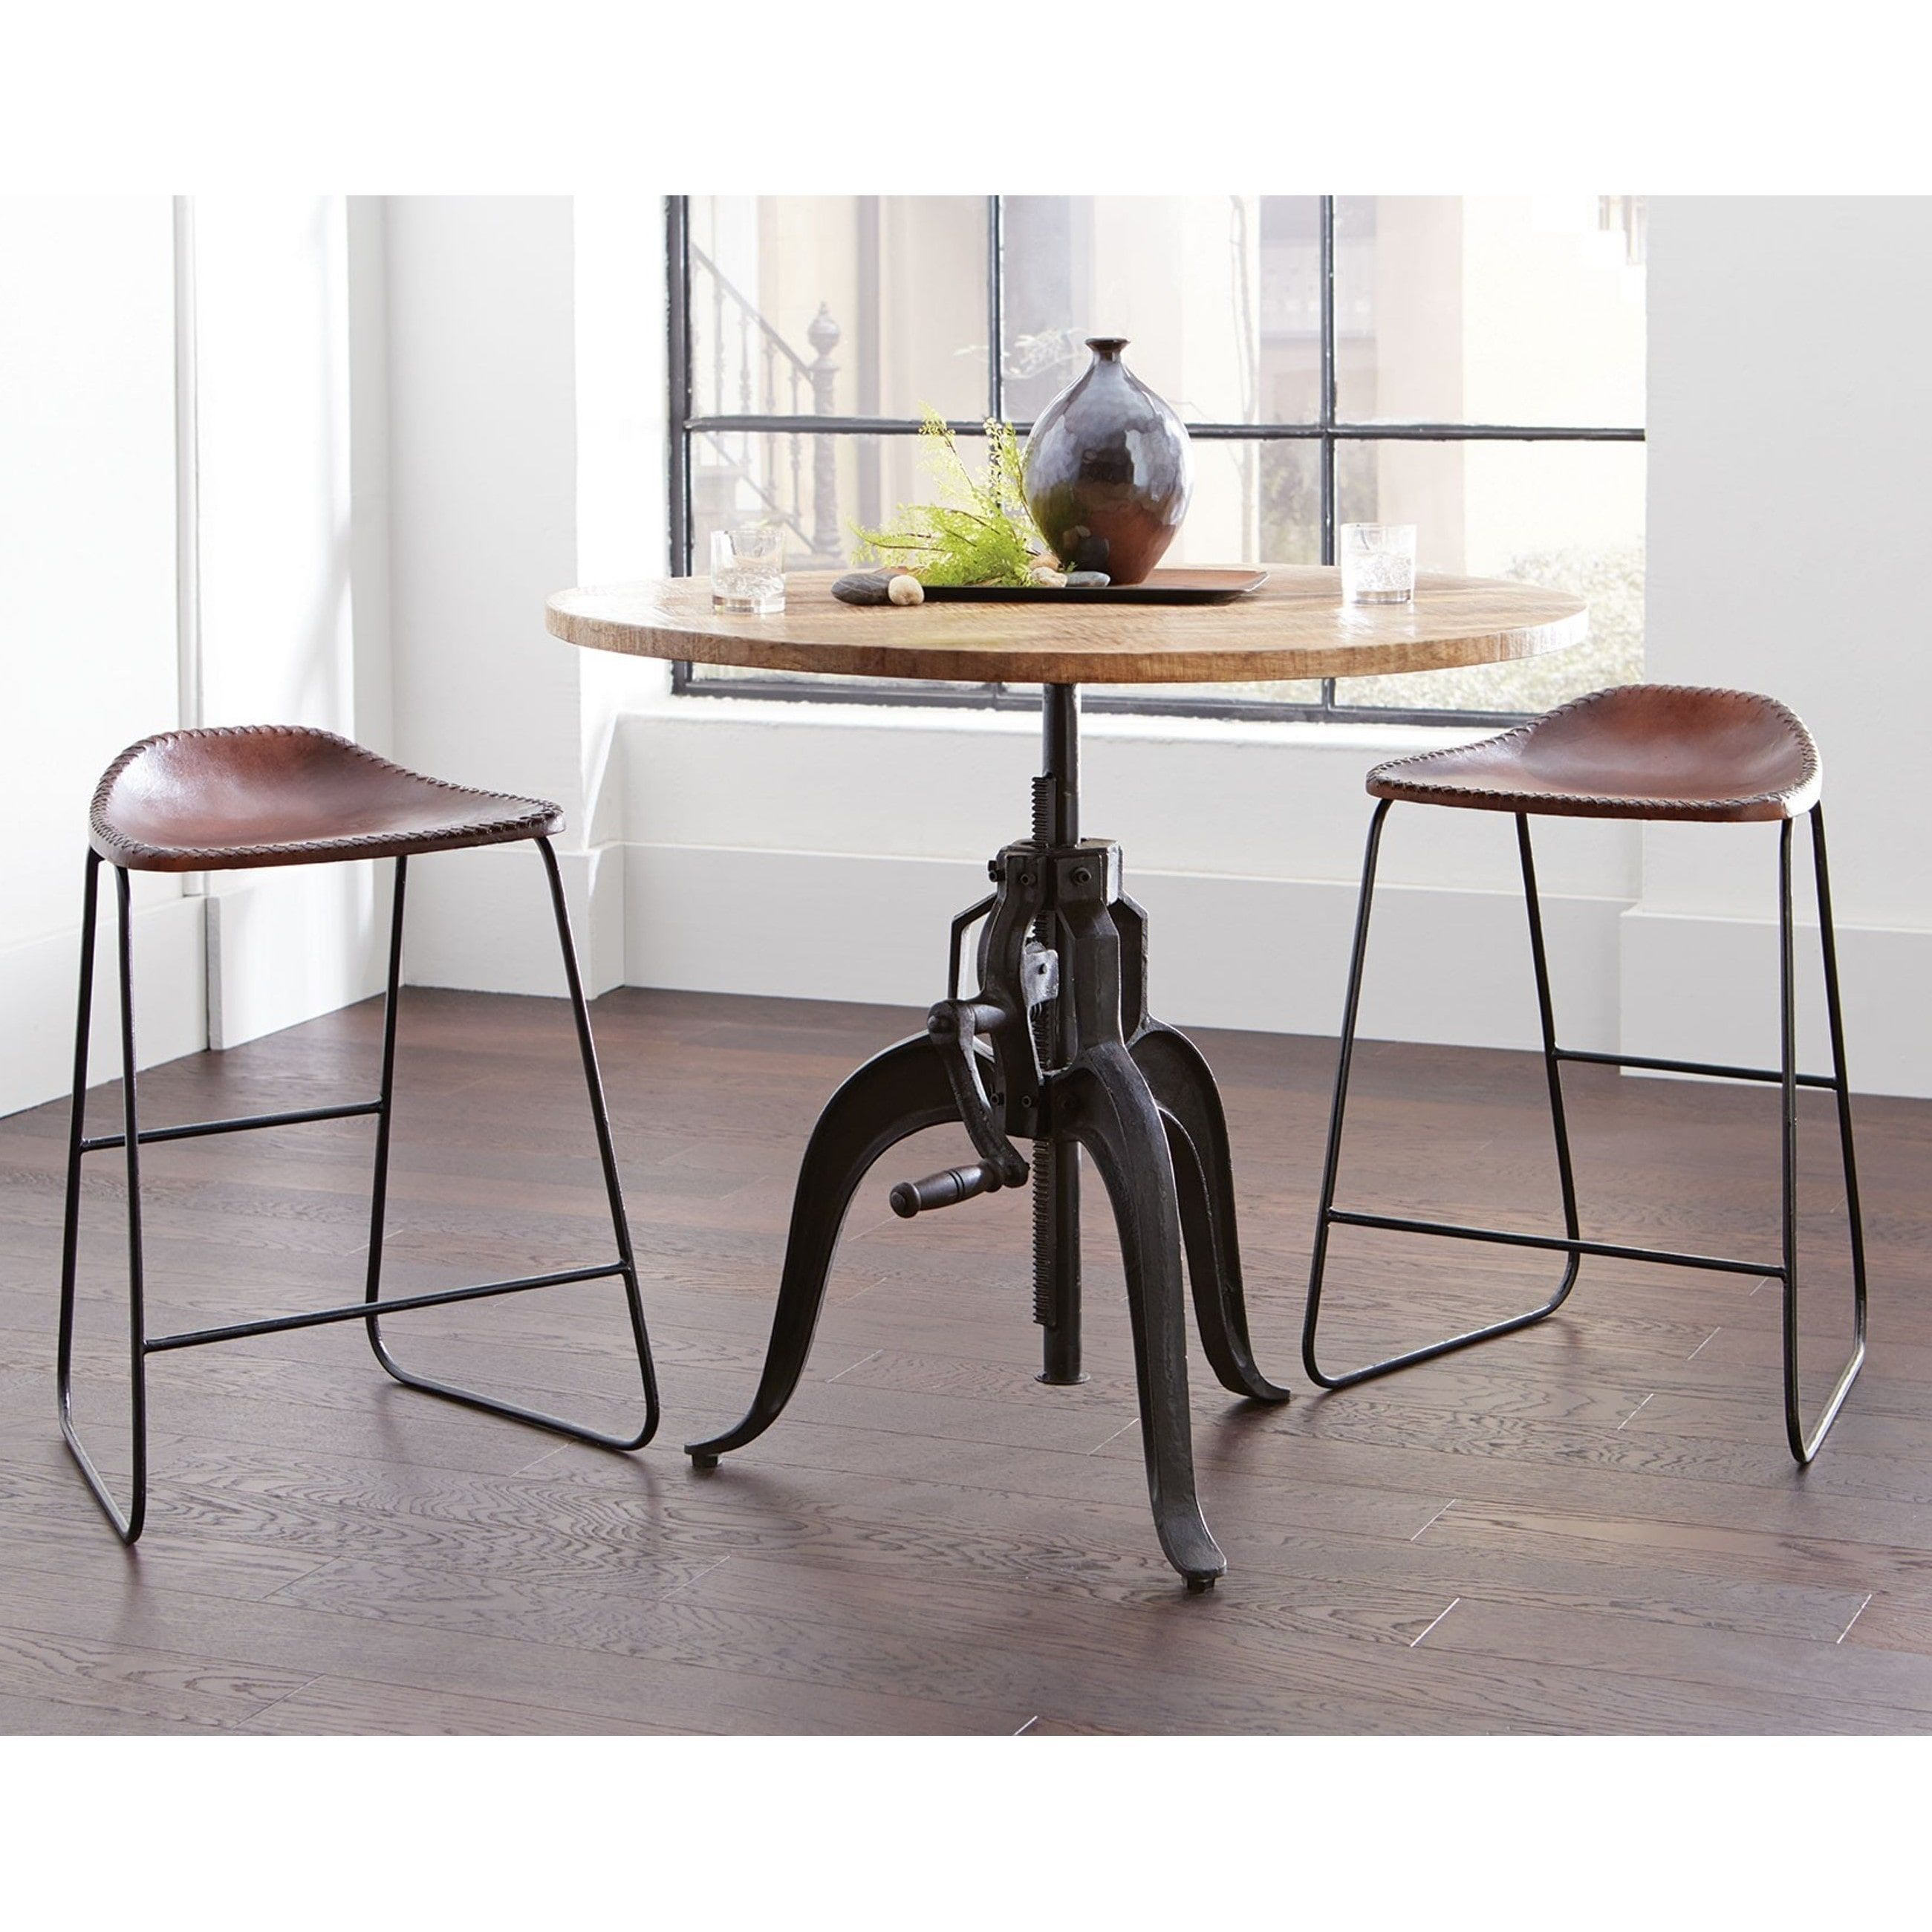 stools and table dining chair high seat pub adjustable piece ebay view set larger bar room kitchen l stool tables